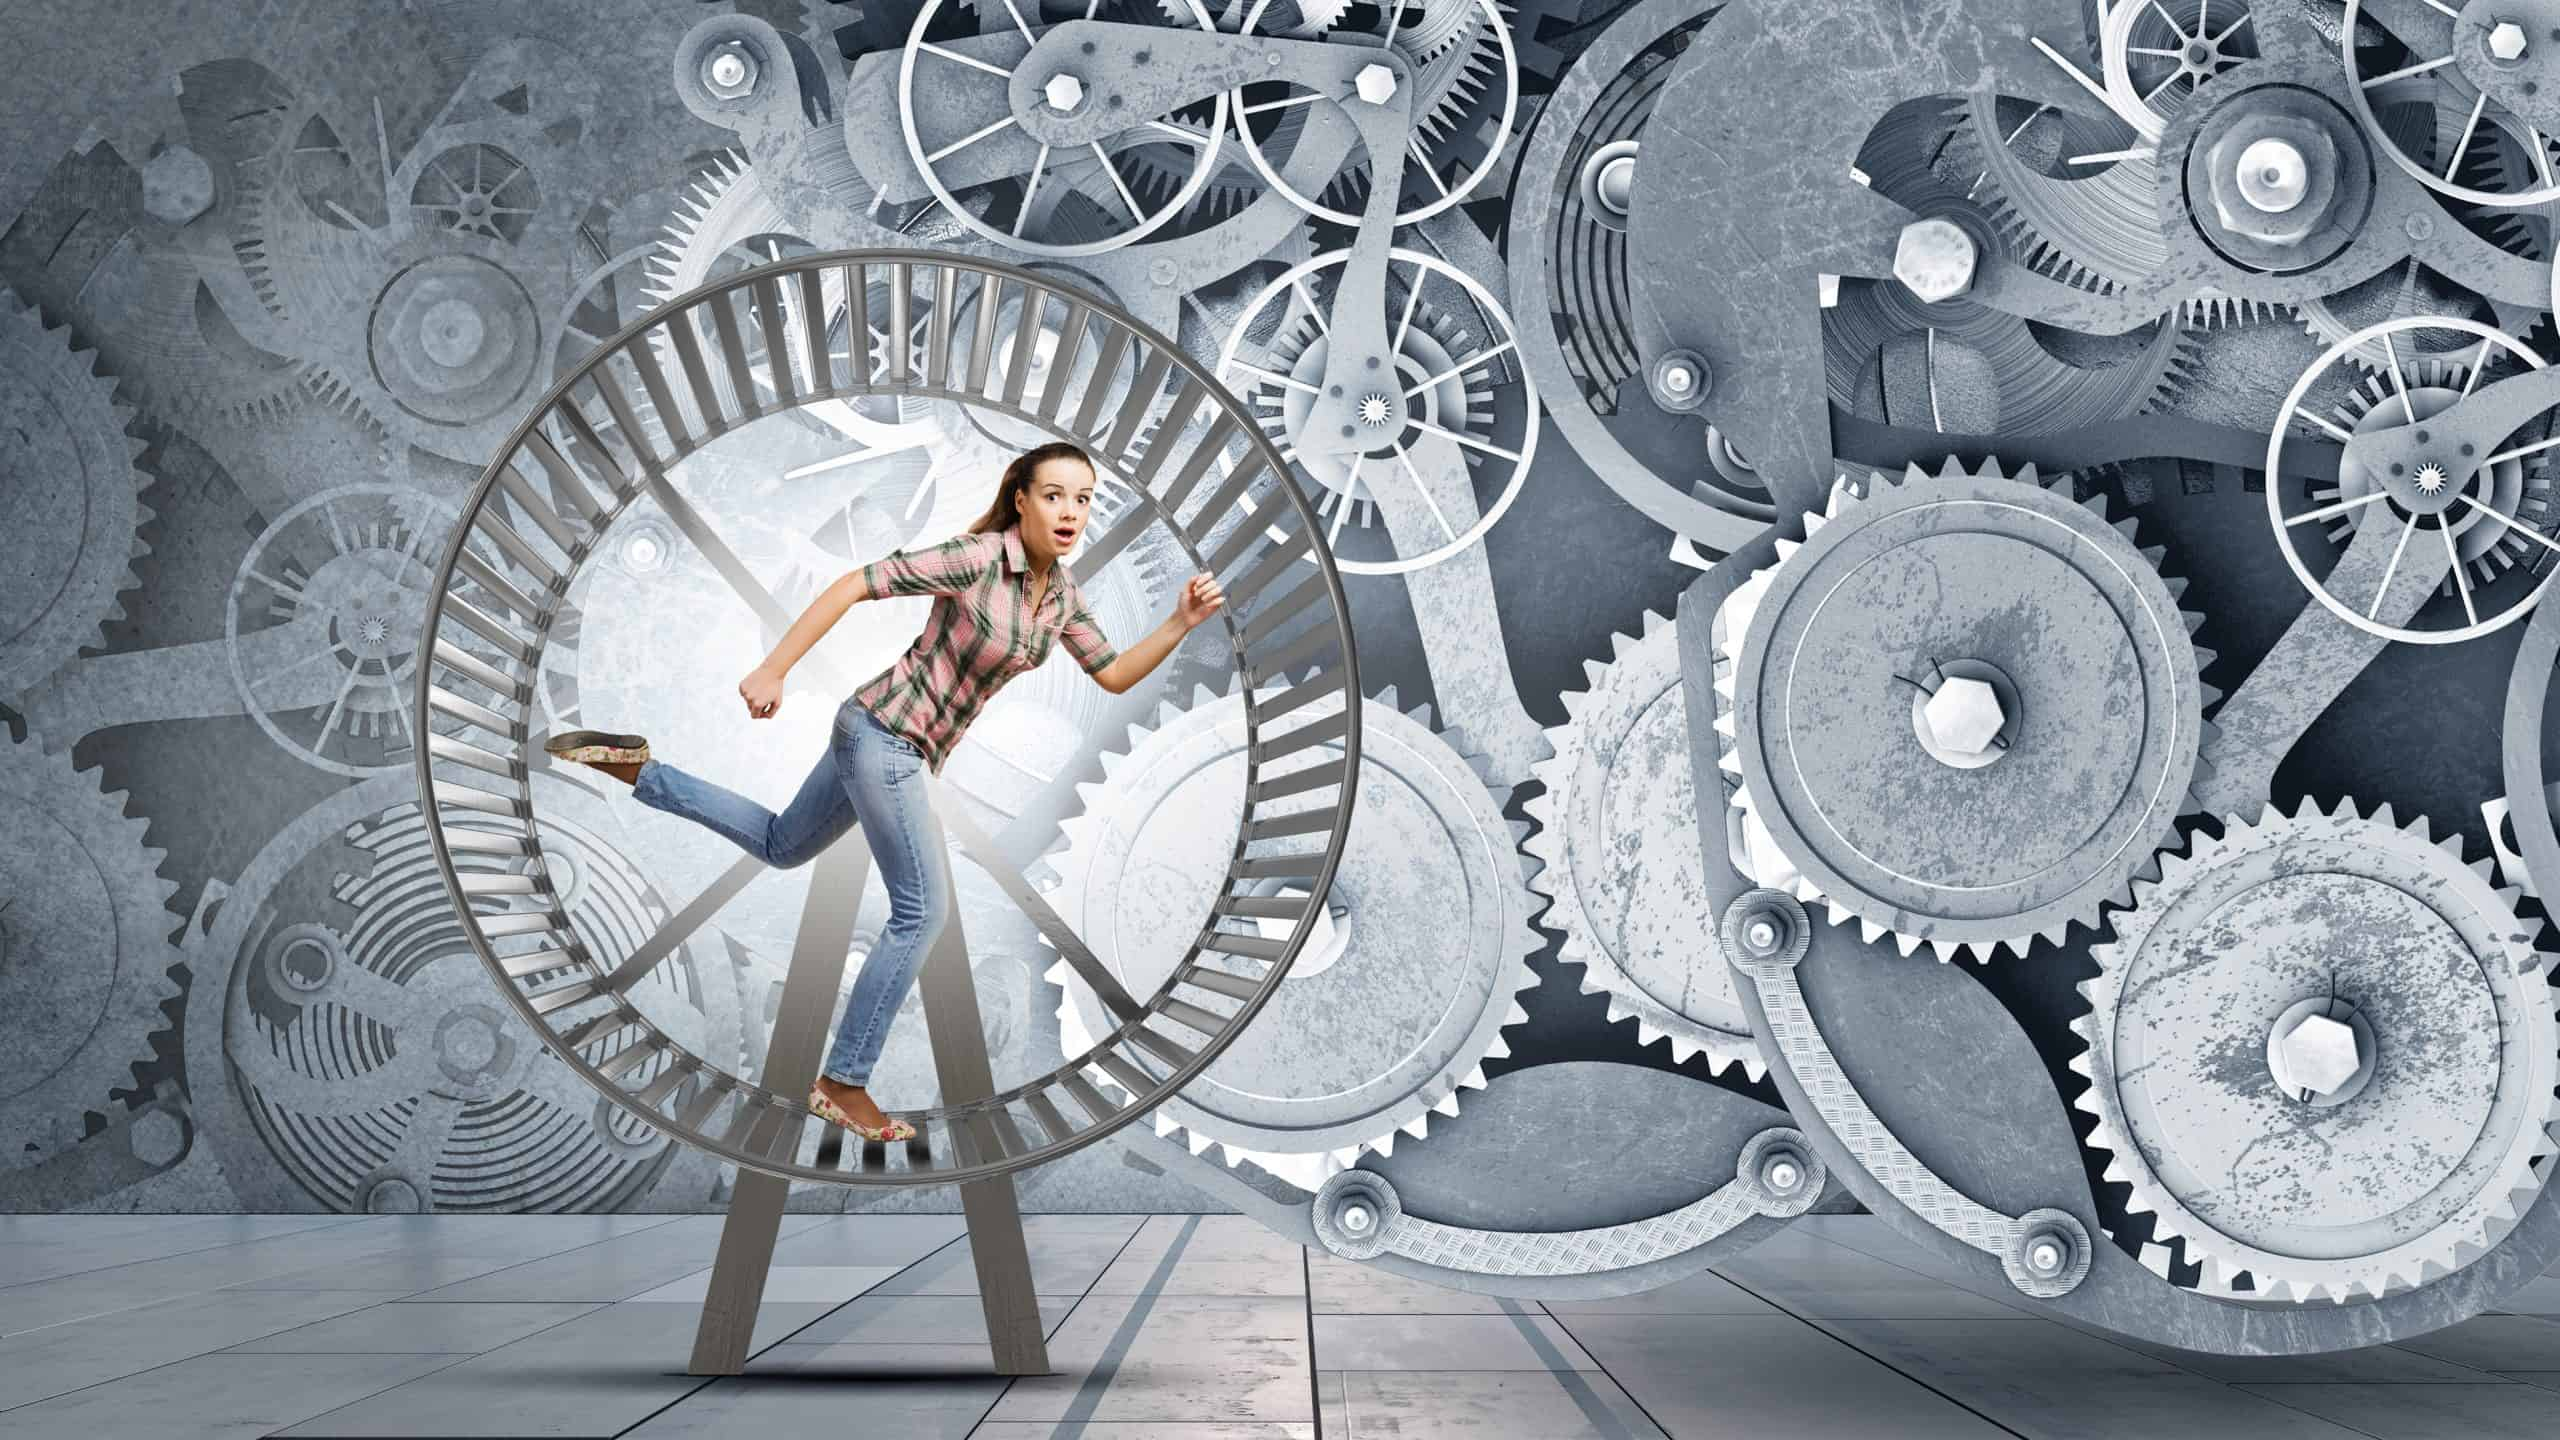 Photo of a woman on a giant hamster wheel- going around in circles, too busy. This is to represent the need for gratitude to help one relax and sleep better, one of the 6 benefits of gratitude.